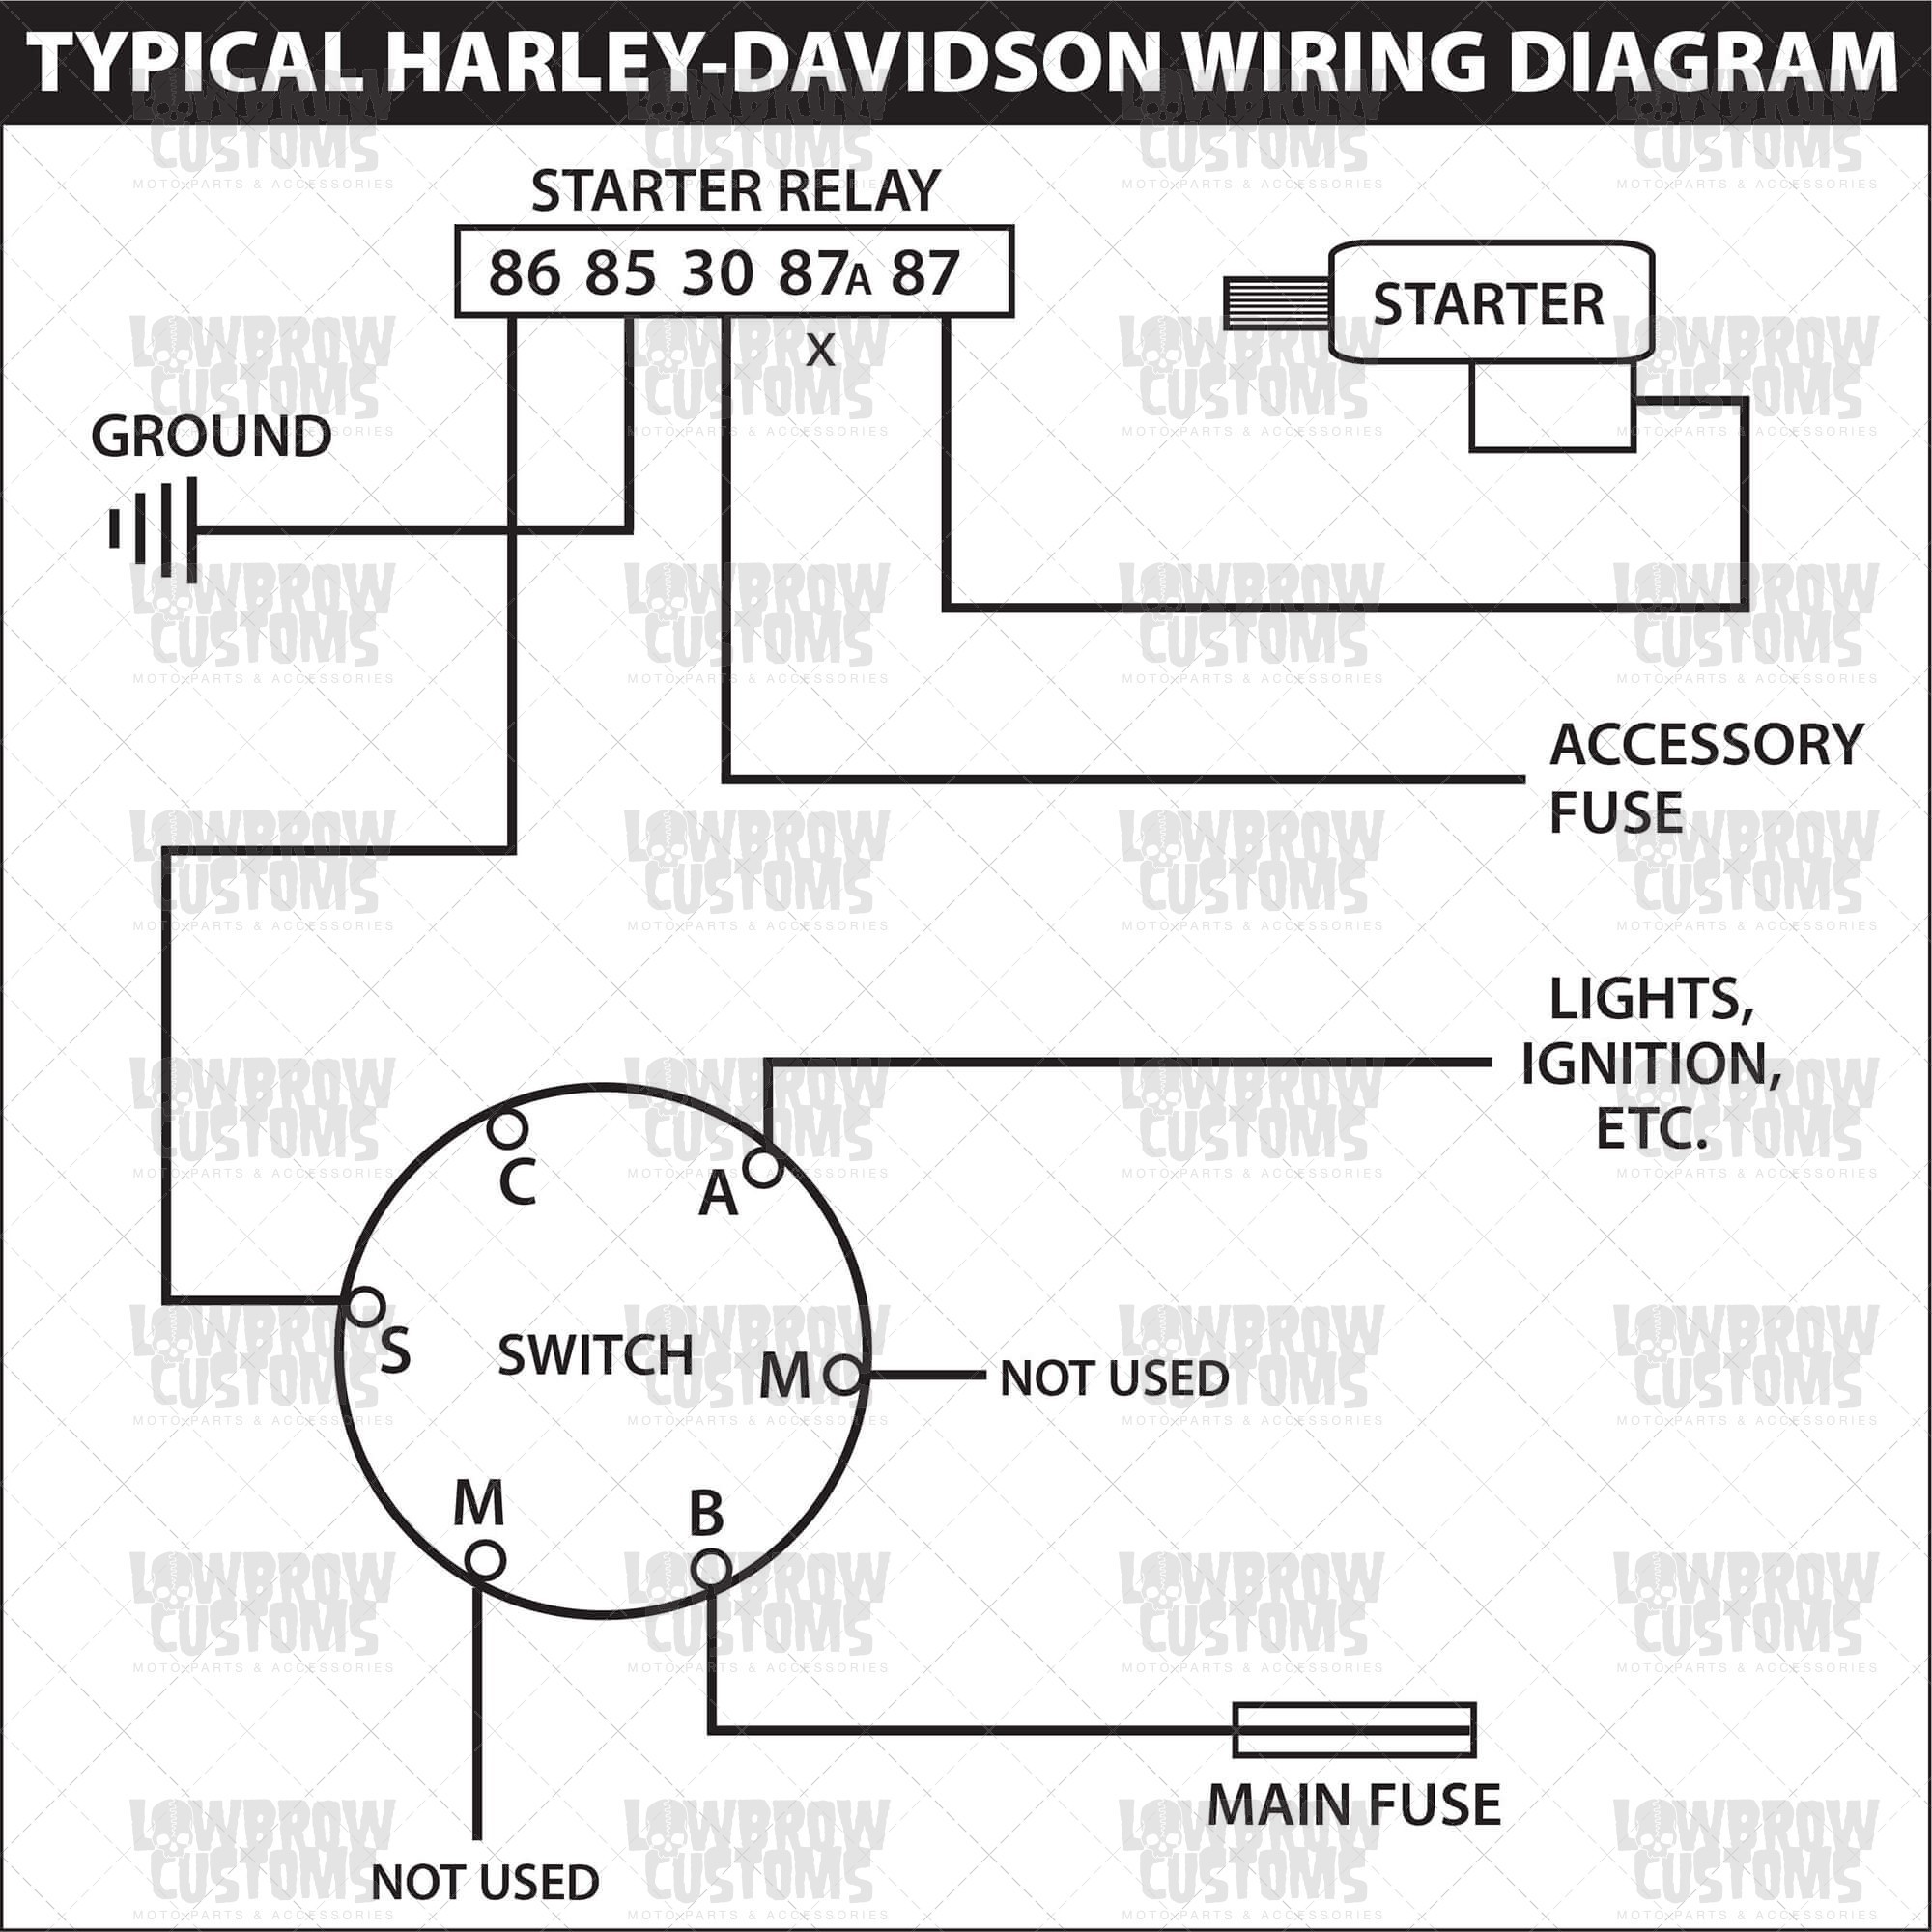 Small Engine Ignition Switch Wiring Diagram Lawn Mower On Diagrams Of Related Post